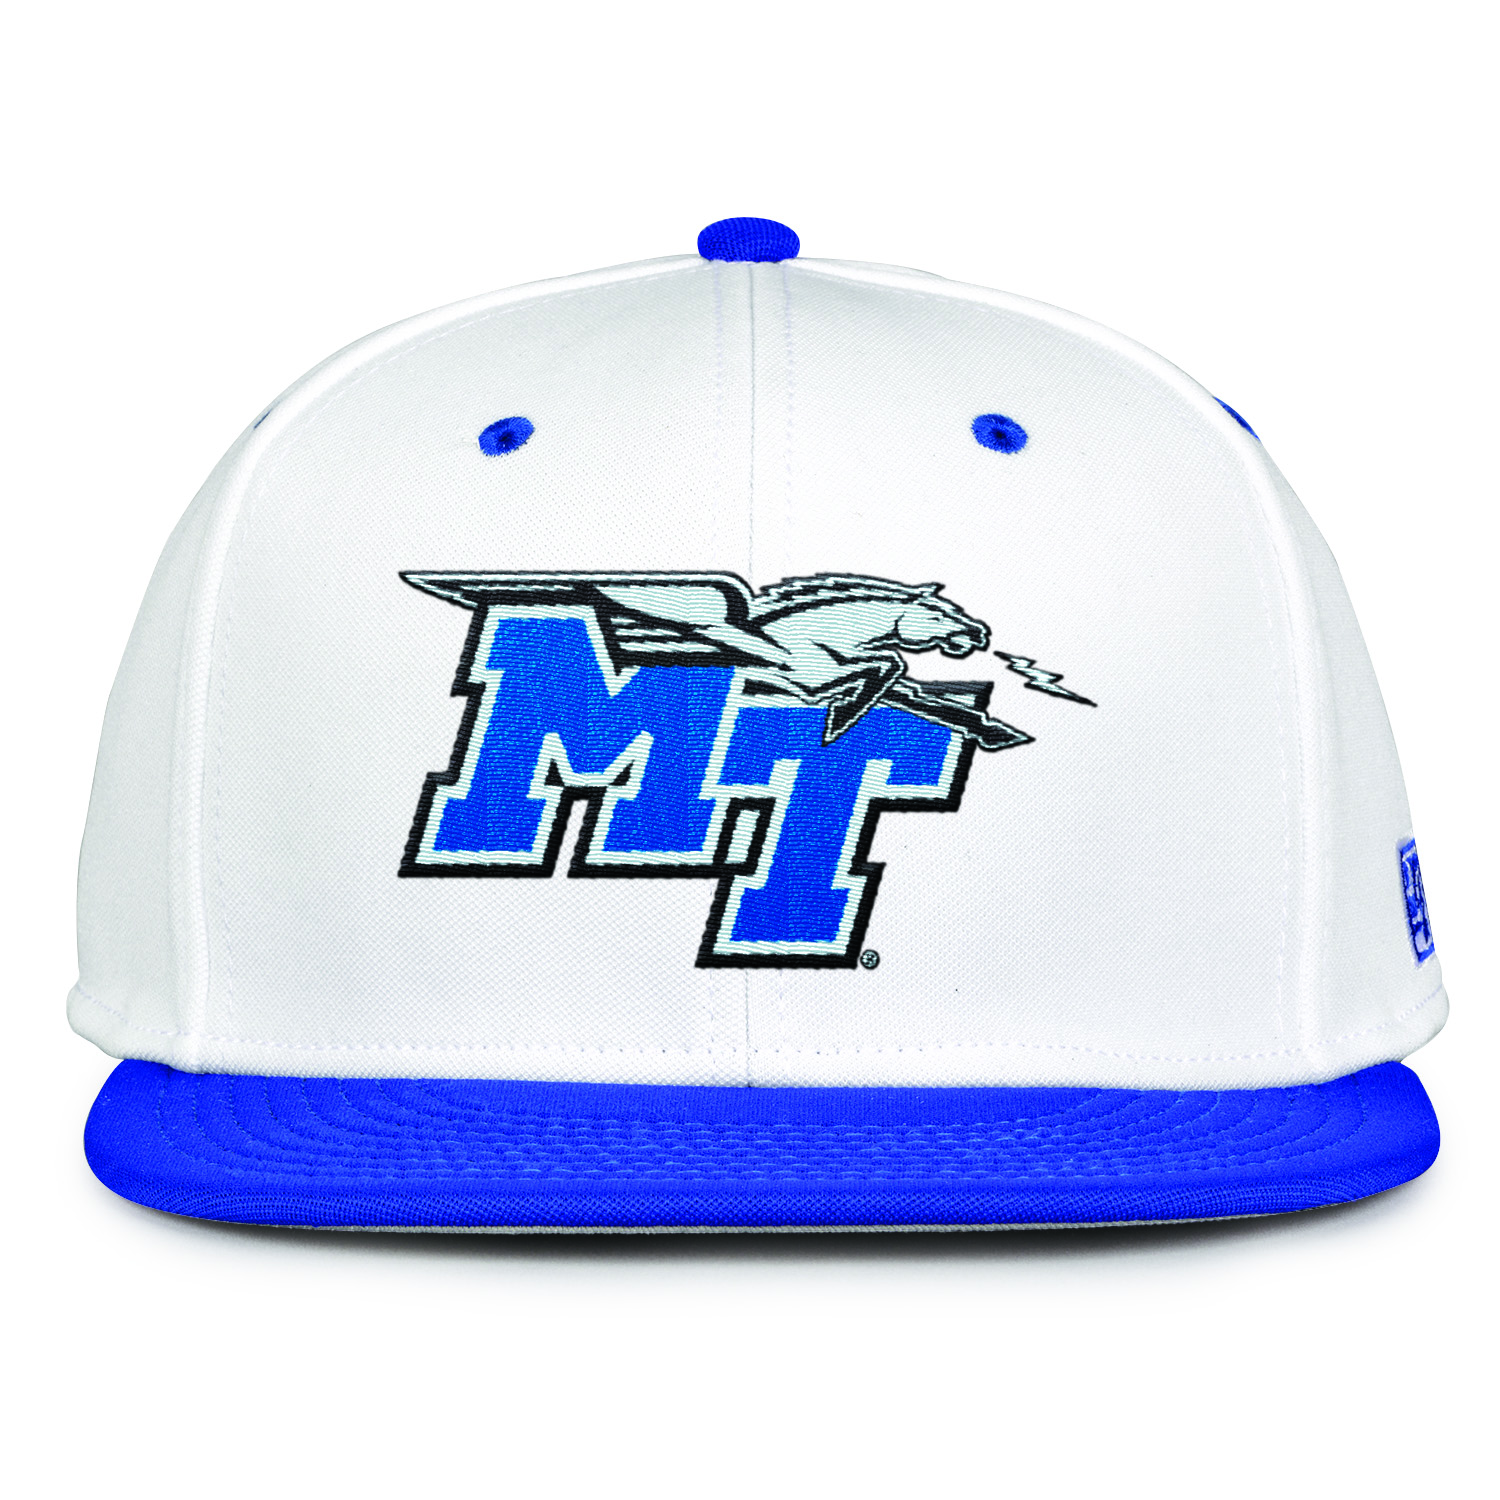 MT Logo w/ Lightning Two-tone Gametek 2 Flatbill